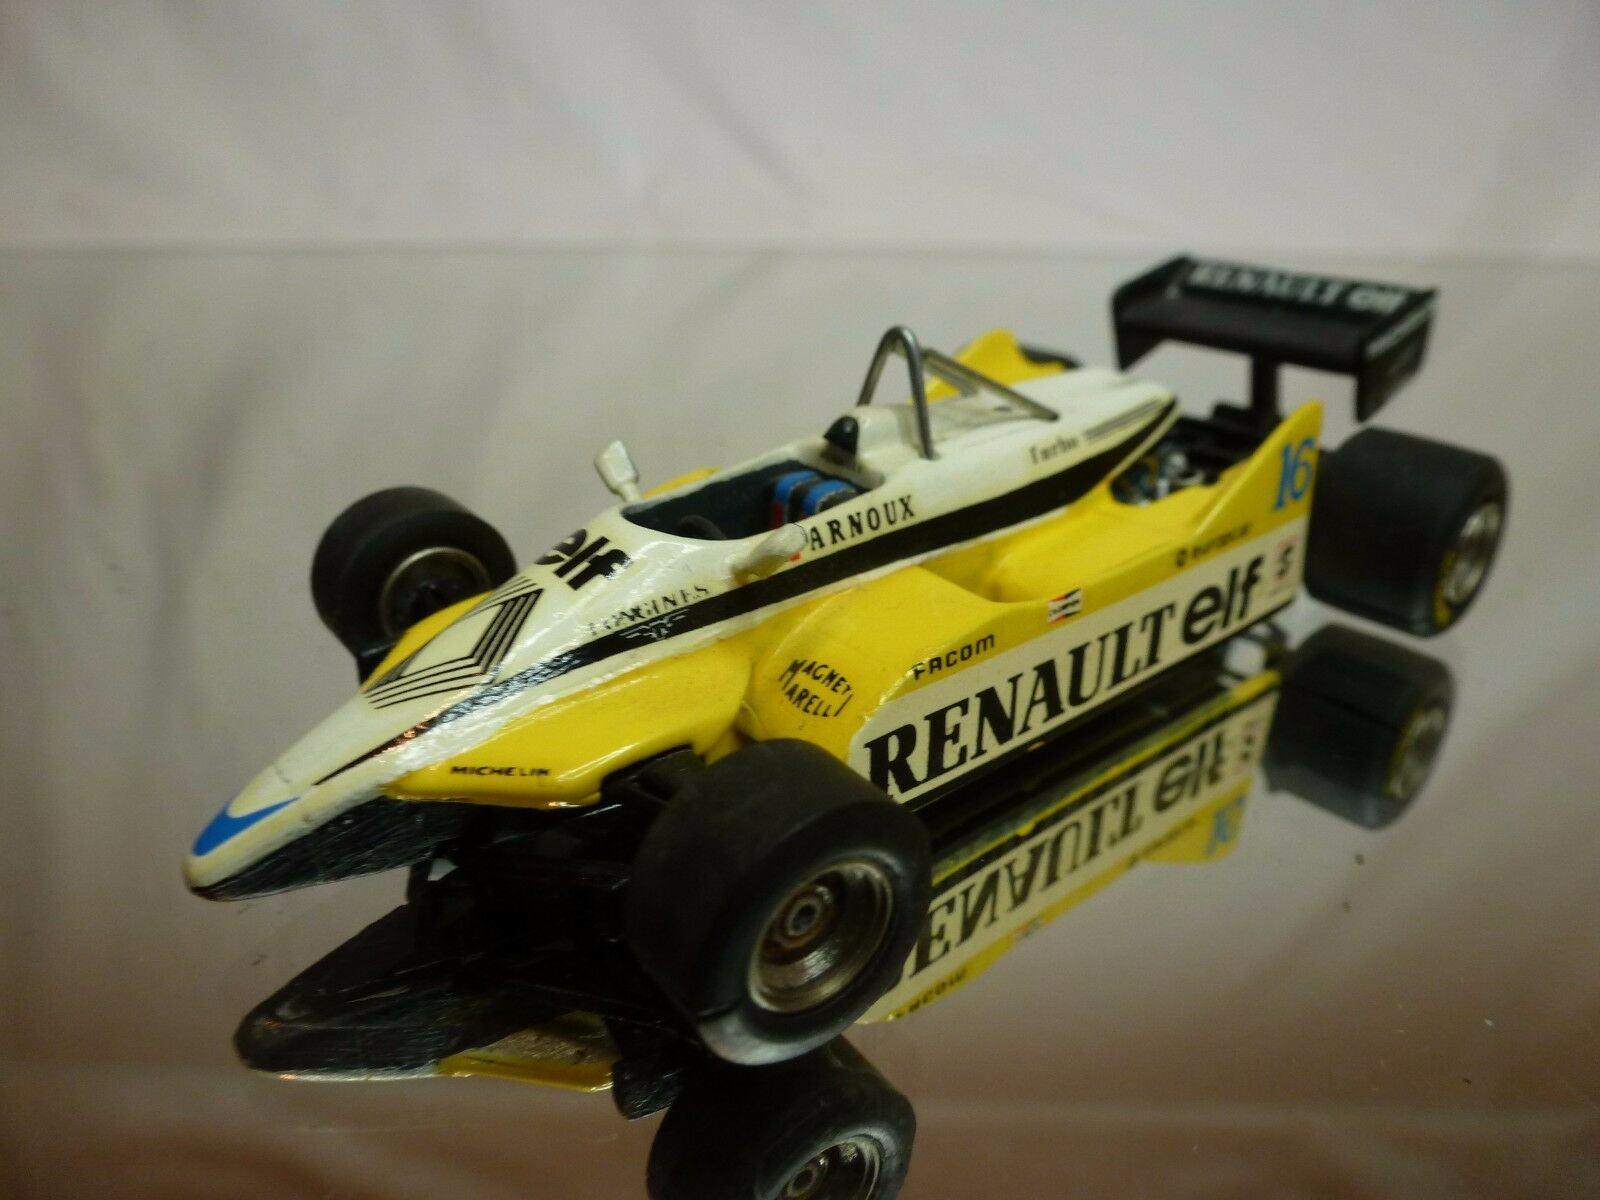 TENARIV KIT (built) RENAULT RE30B 1982 - ARNOUX No 16 - F1 giallo 1 43 - NICE